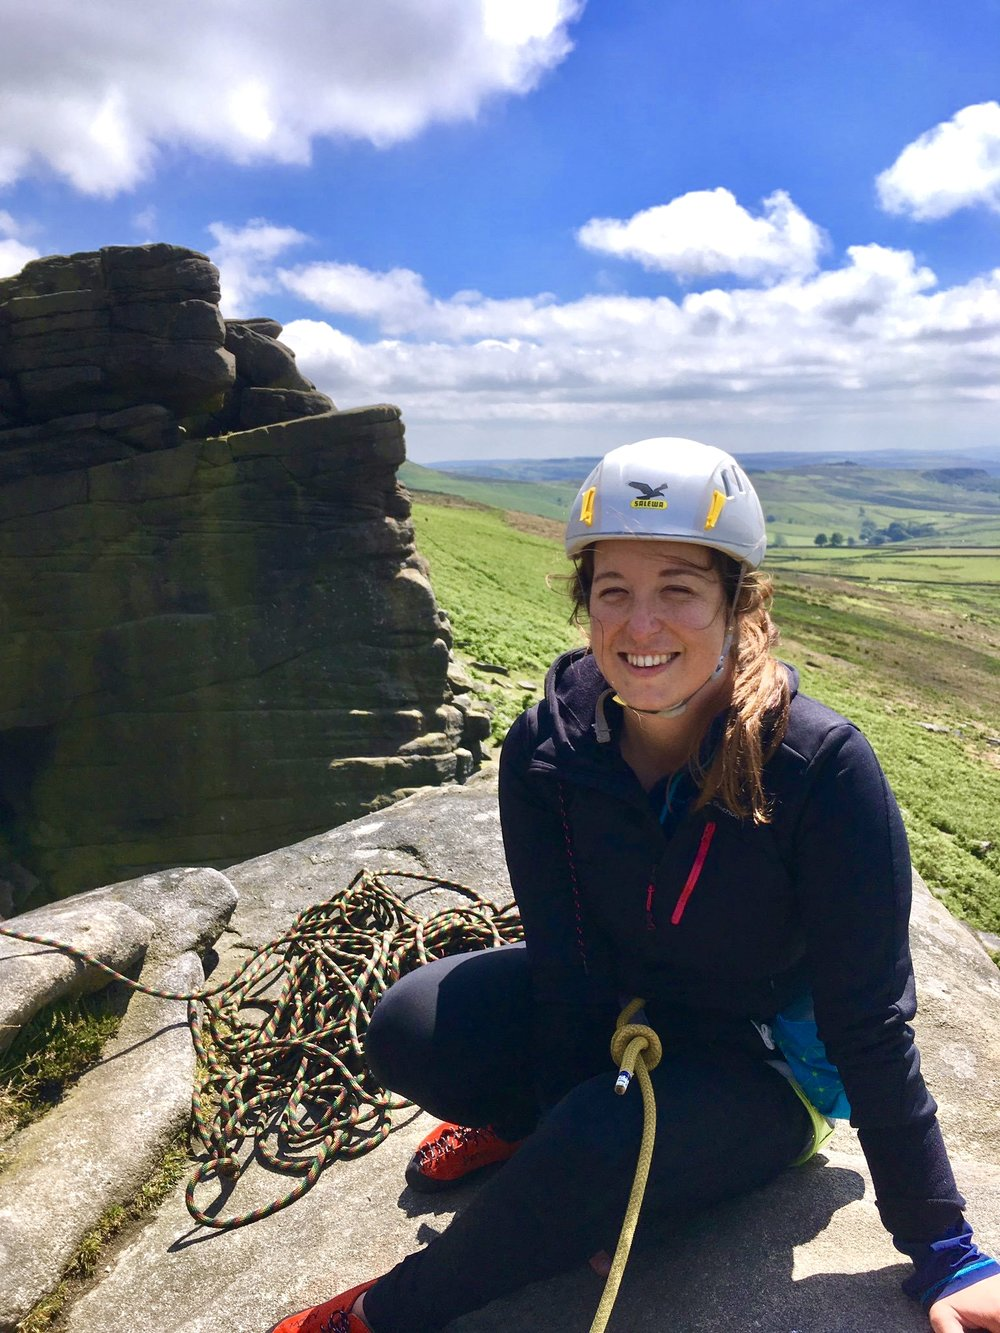 Briony - Ed is very knowledgeable, both as an instructor and with regard to the locations that he teaches in. He's also excellent company for the long drives to and from! I had such a lovely day.